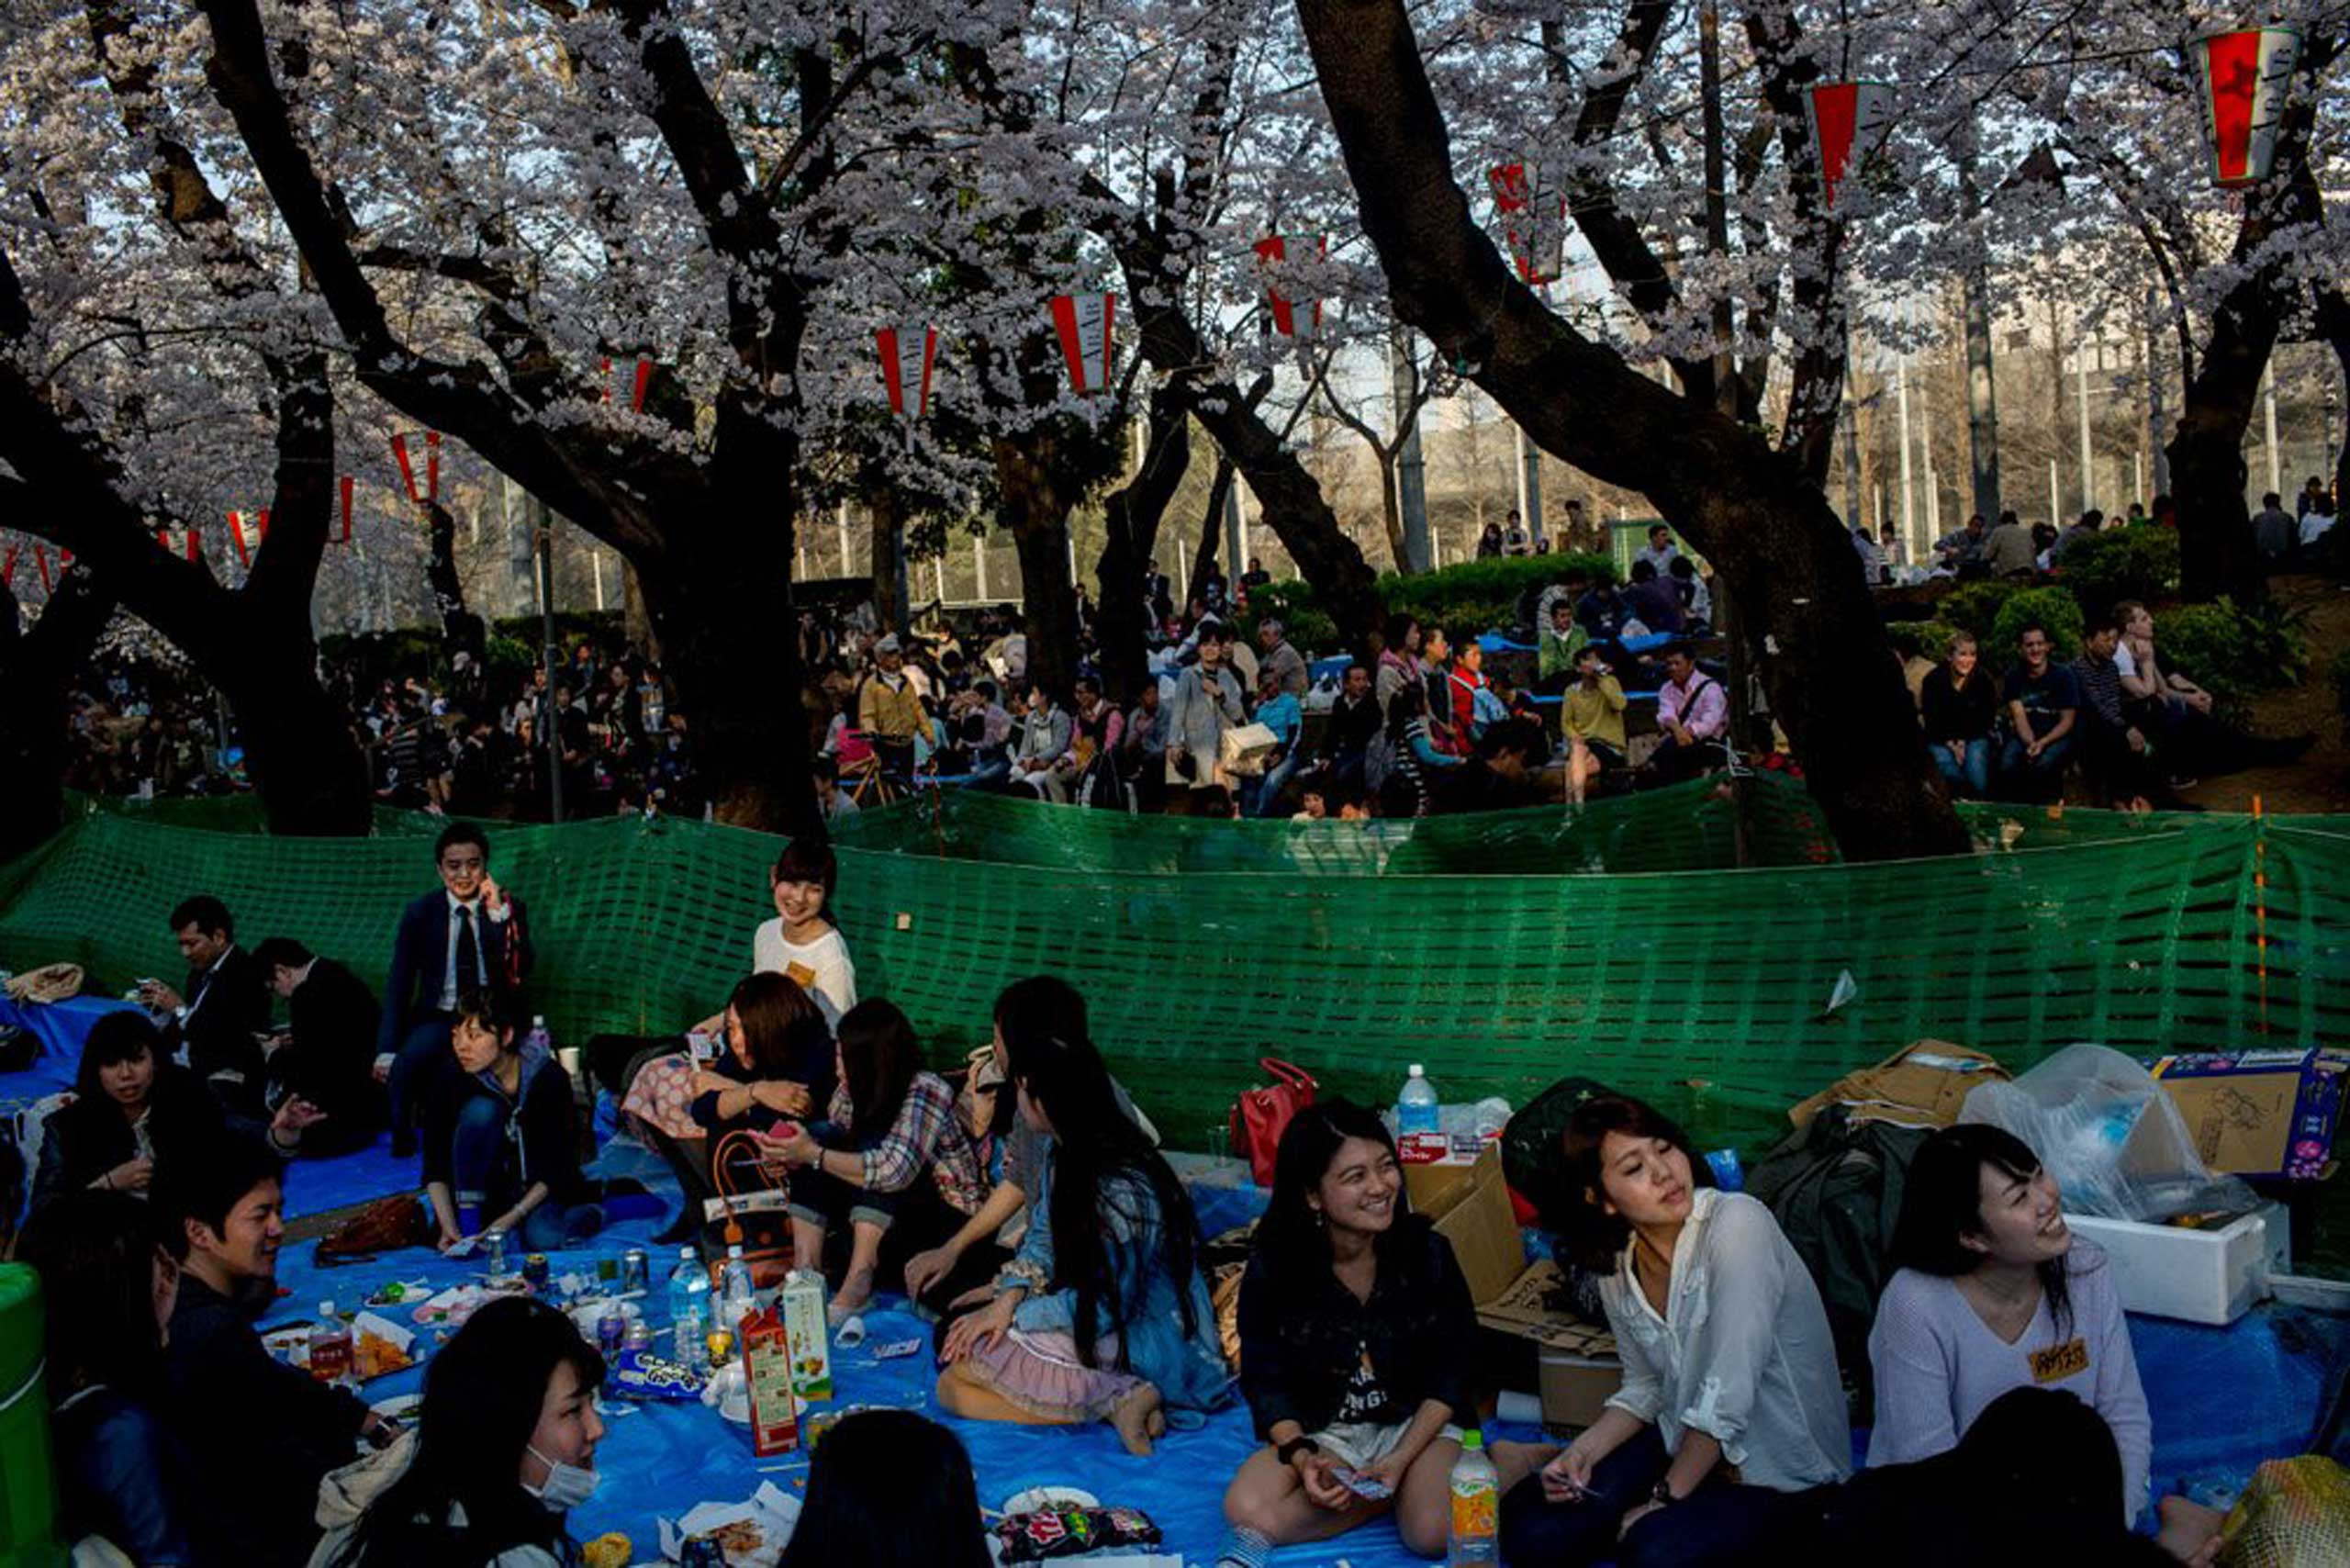 People take part in ' Hanami' or Flower-viewing parties under cherry blossom trees in full bloom in Ueno Park in Tokyo on March 30, 2015.